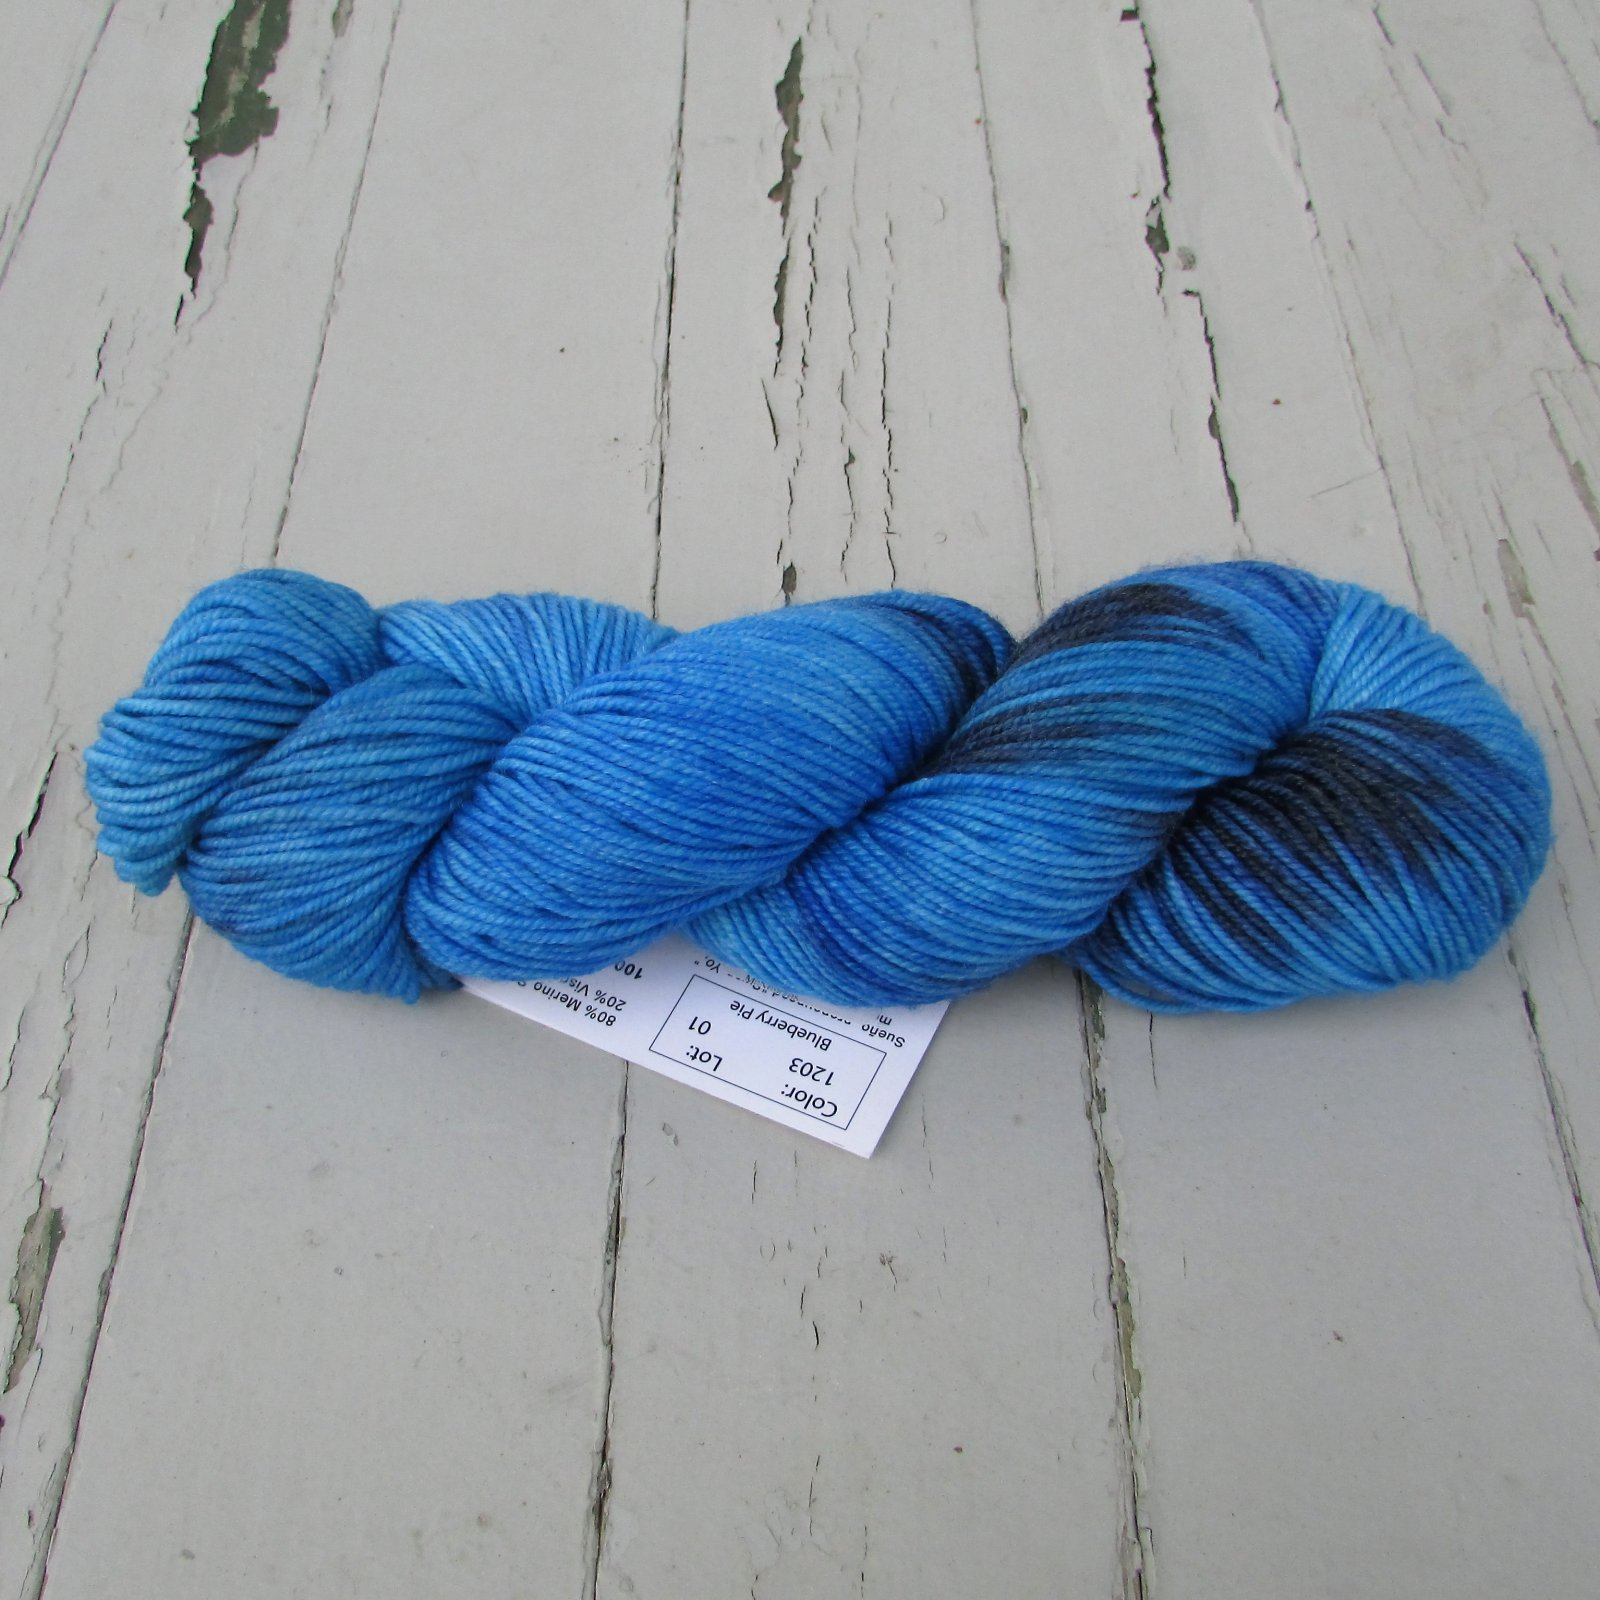 HiKoo Sueno Limited Edition Hand-Dyed